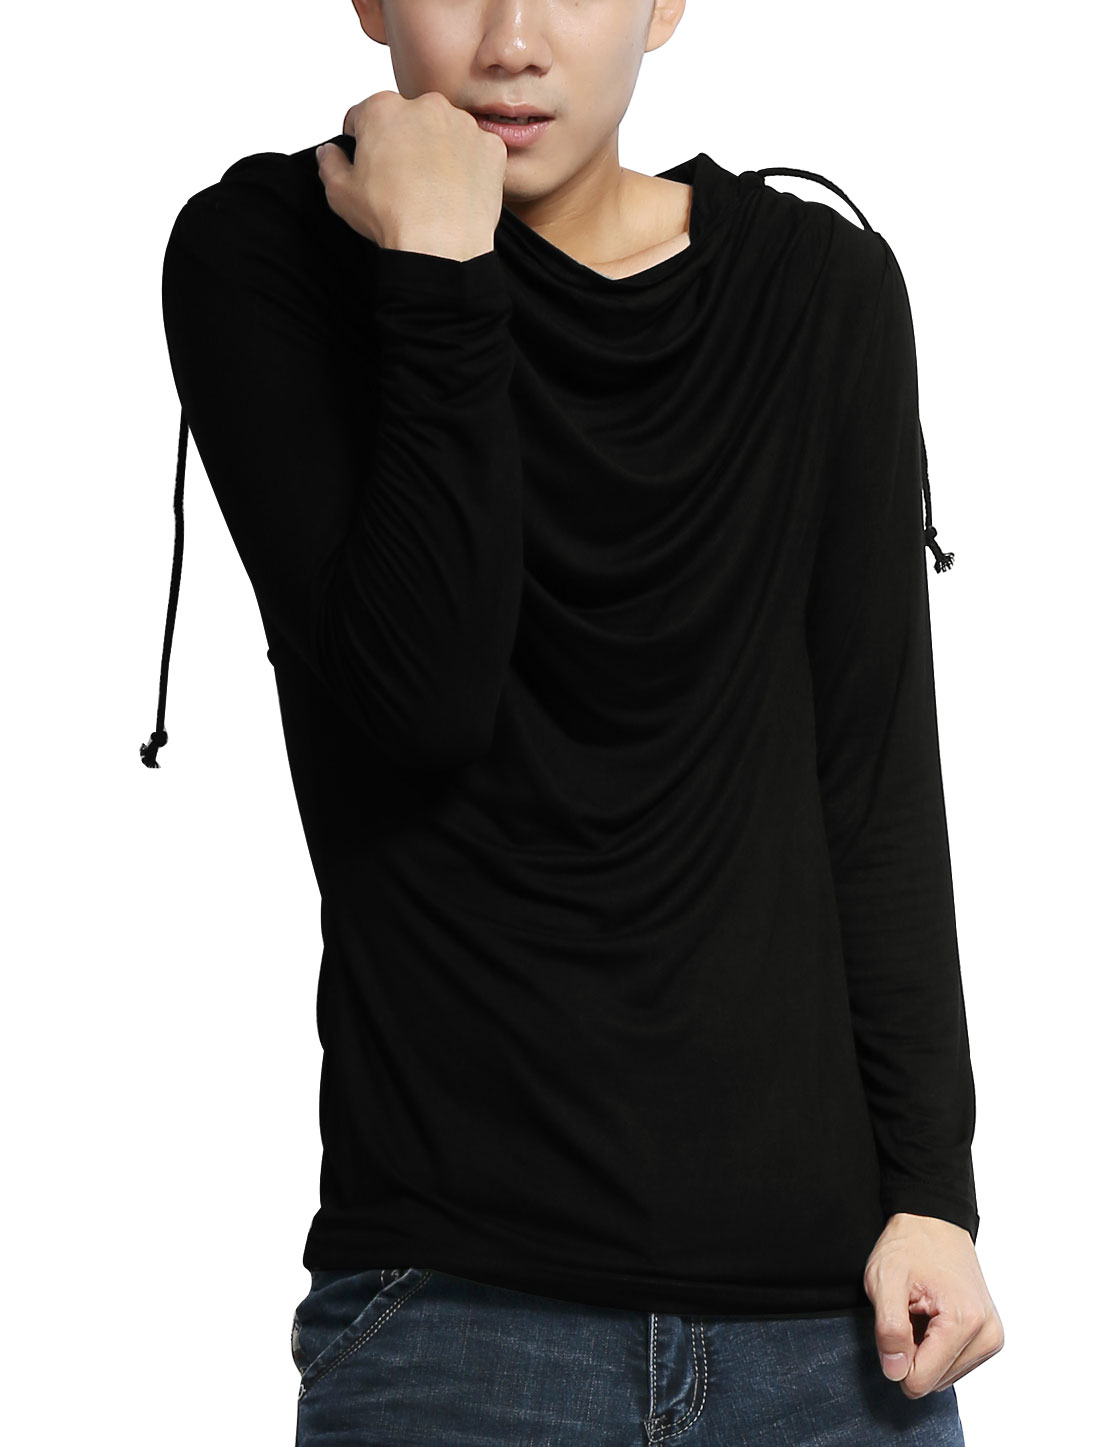 Men Black Stylish Cowl Neck Long Sleeve Design Leisure Hoodie M